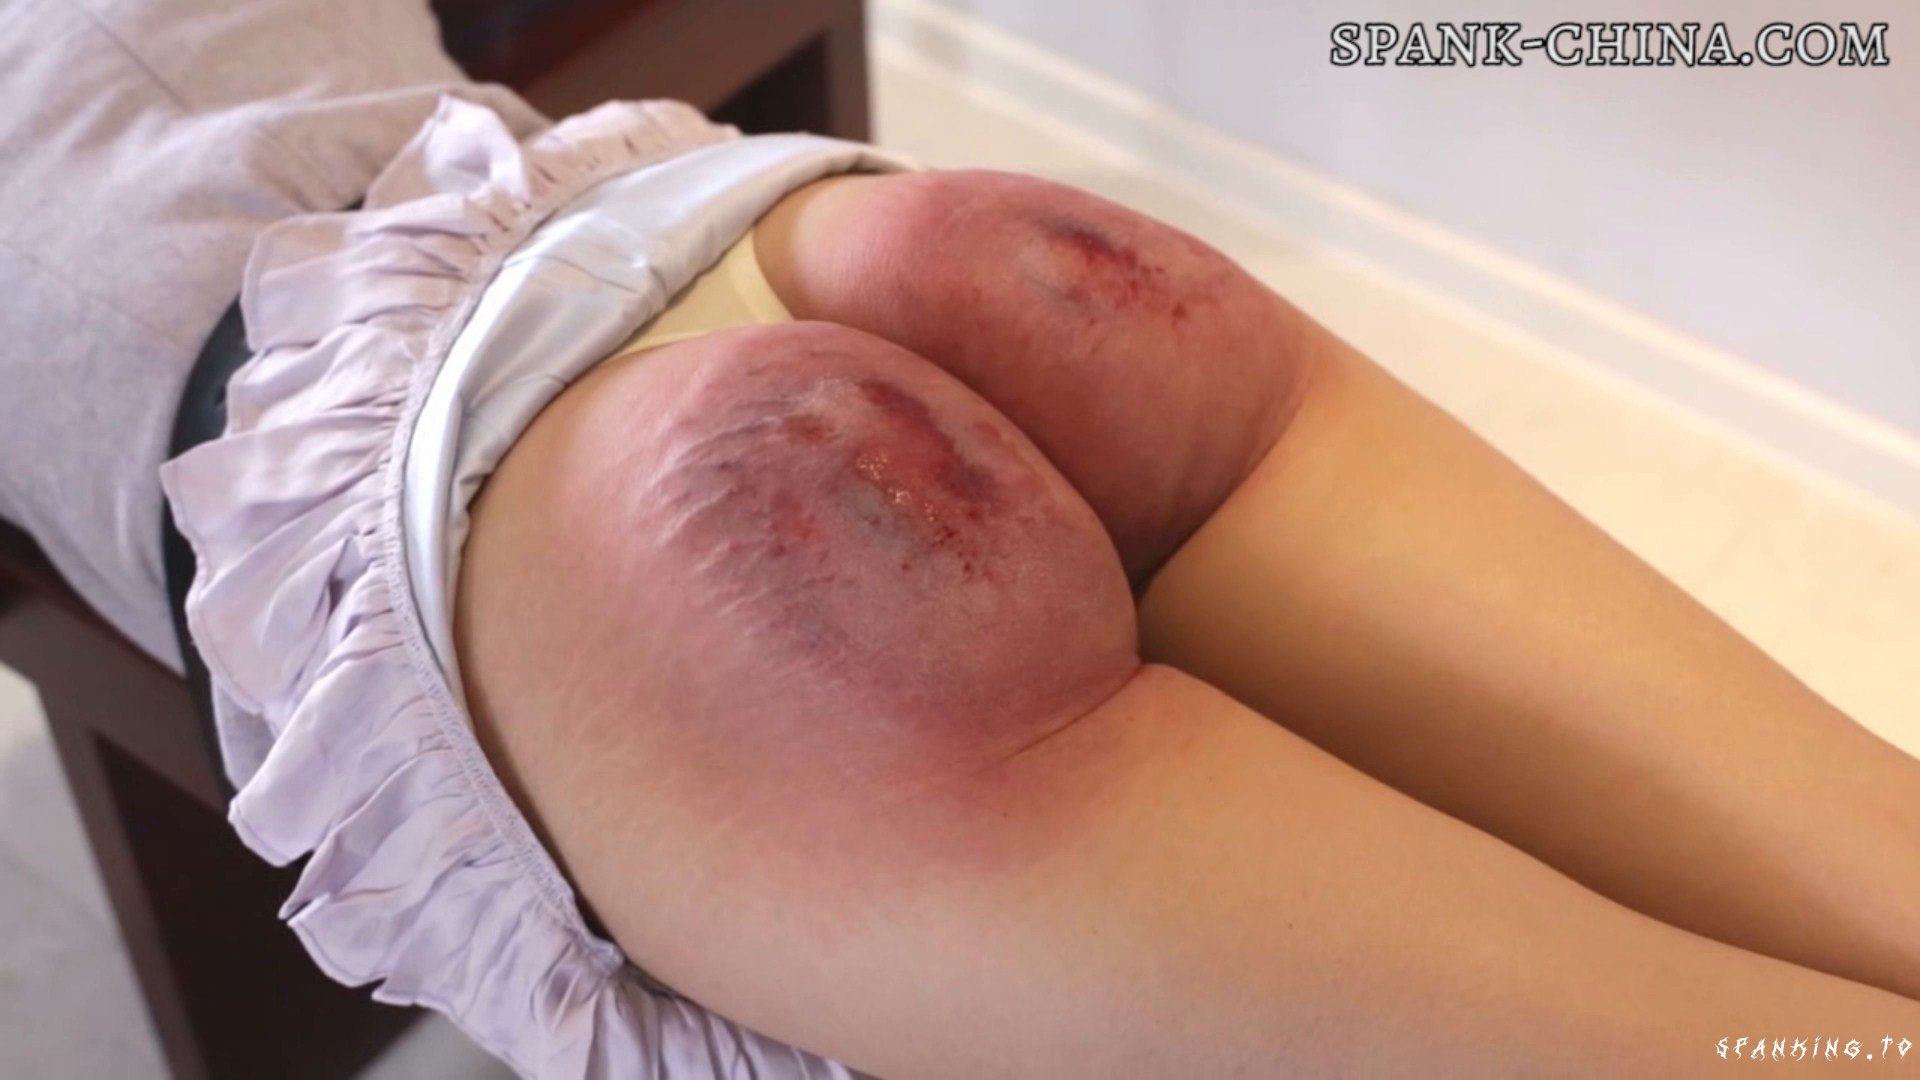 Chinese Ancient Corporal Punishment (huarong 20 Y.o.) - China-Spank - Full HD